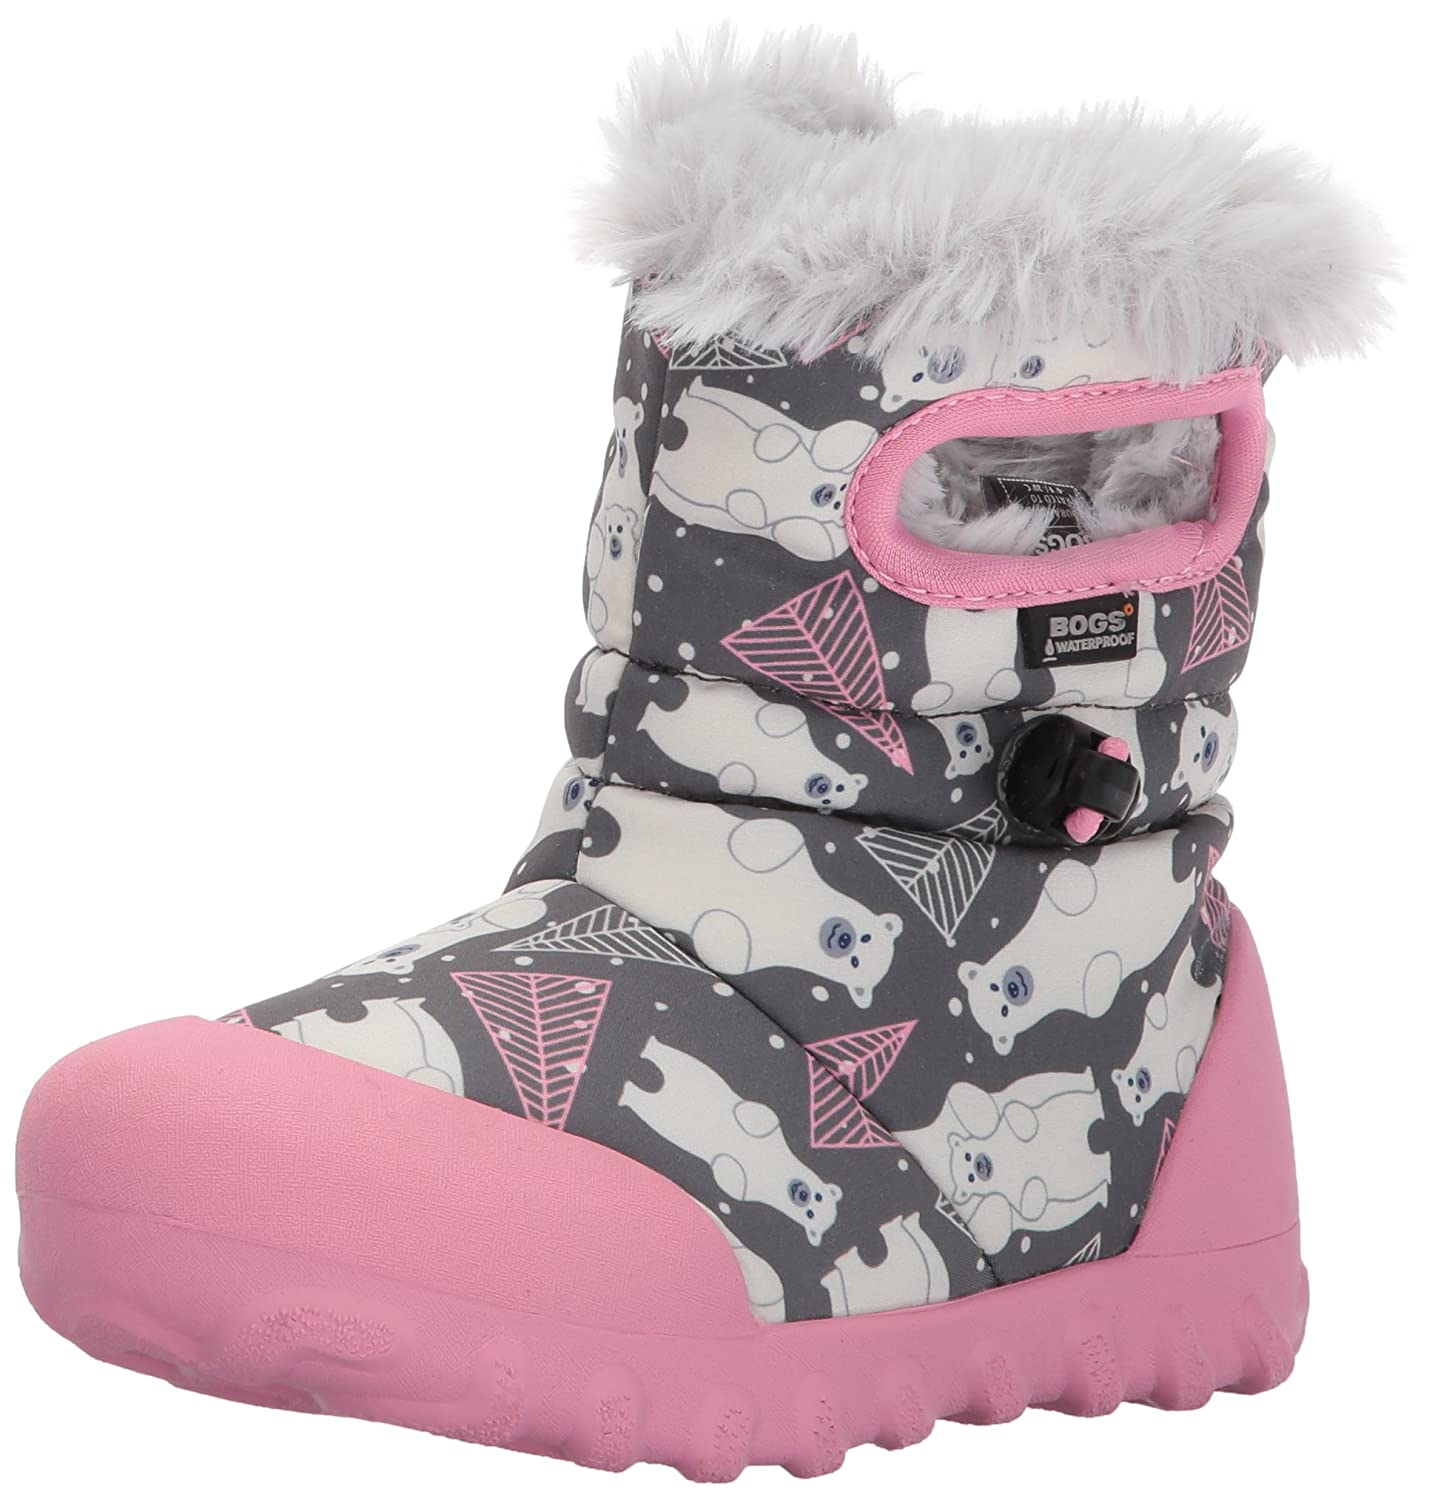 Bogs B-moc Waterproof Insulated Kids/Toddler Winter Boot 72162K-074-13.0